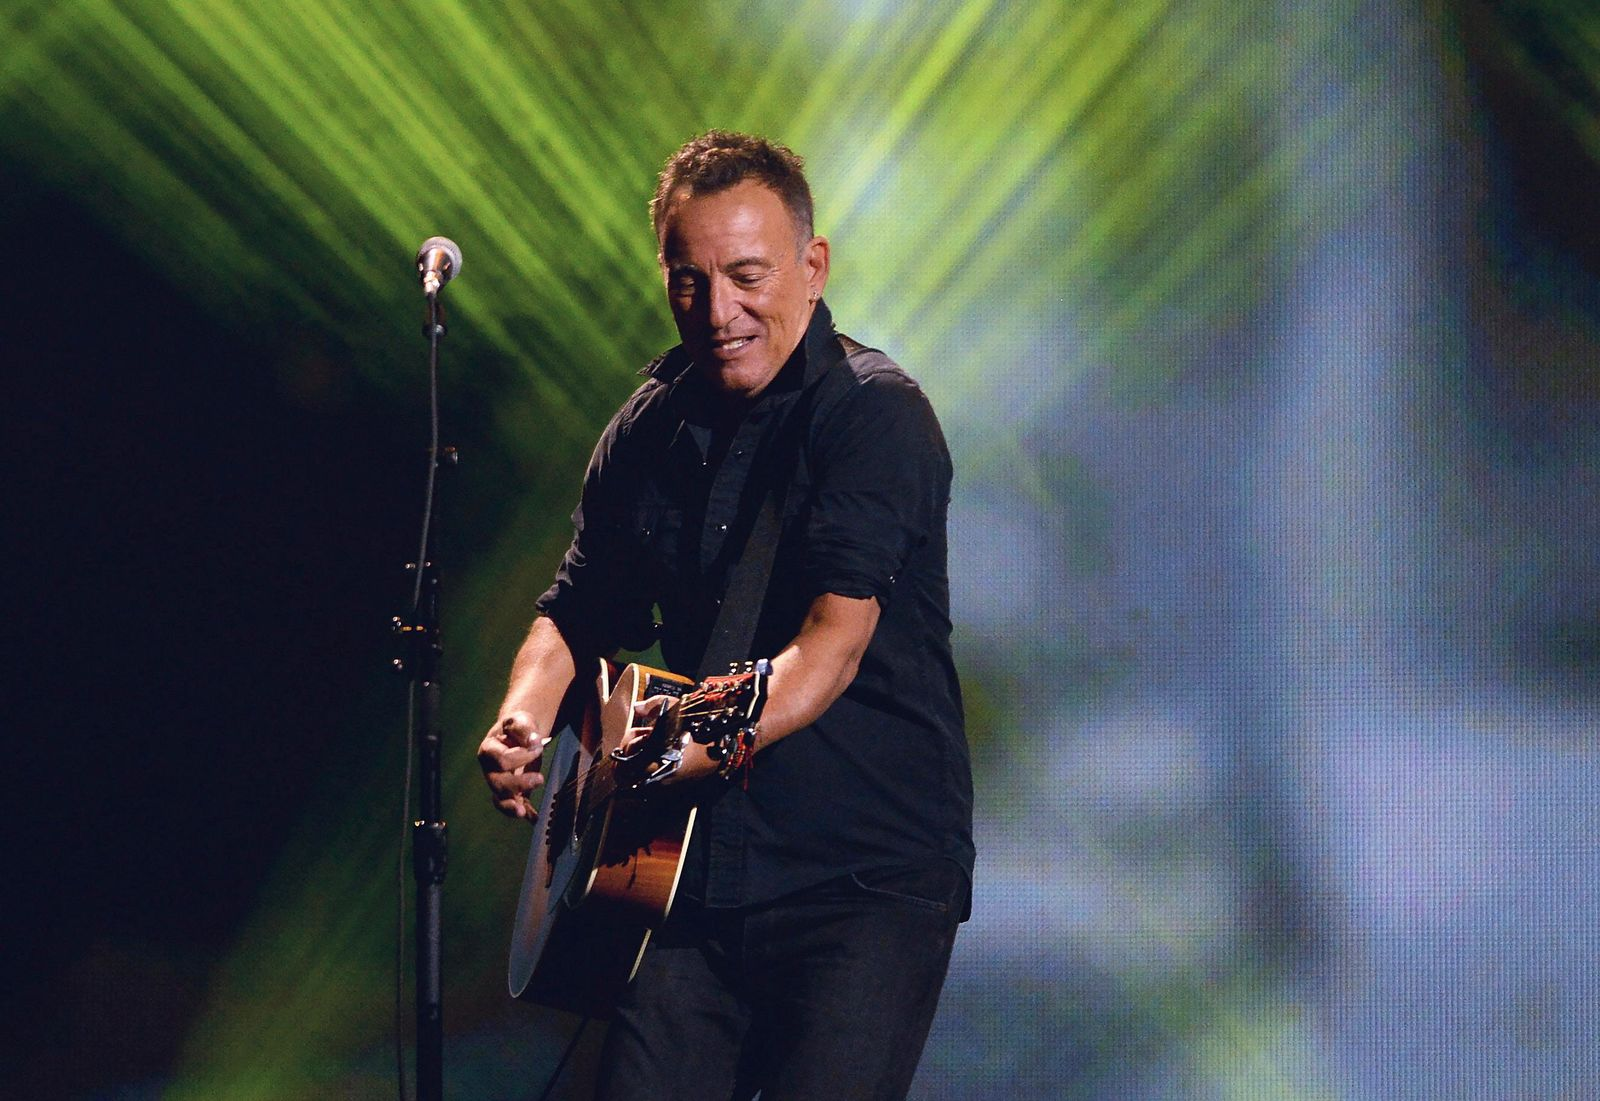 FILE - In this Sept. 30, 2017 file photo, Bruce Springsteen performs during the closing ceremonies of the Invictus Games in Toronto. (Nathan Denette/The Canadian Press via AP, File)